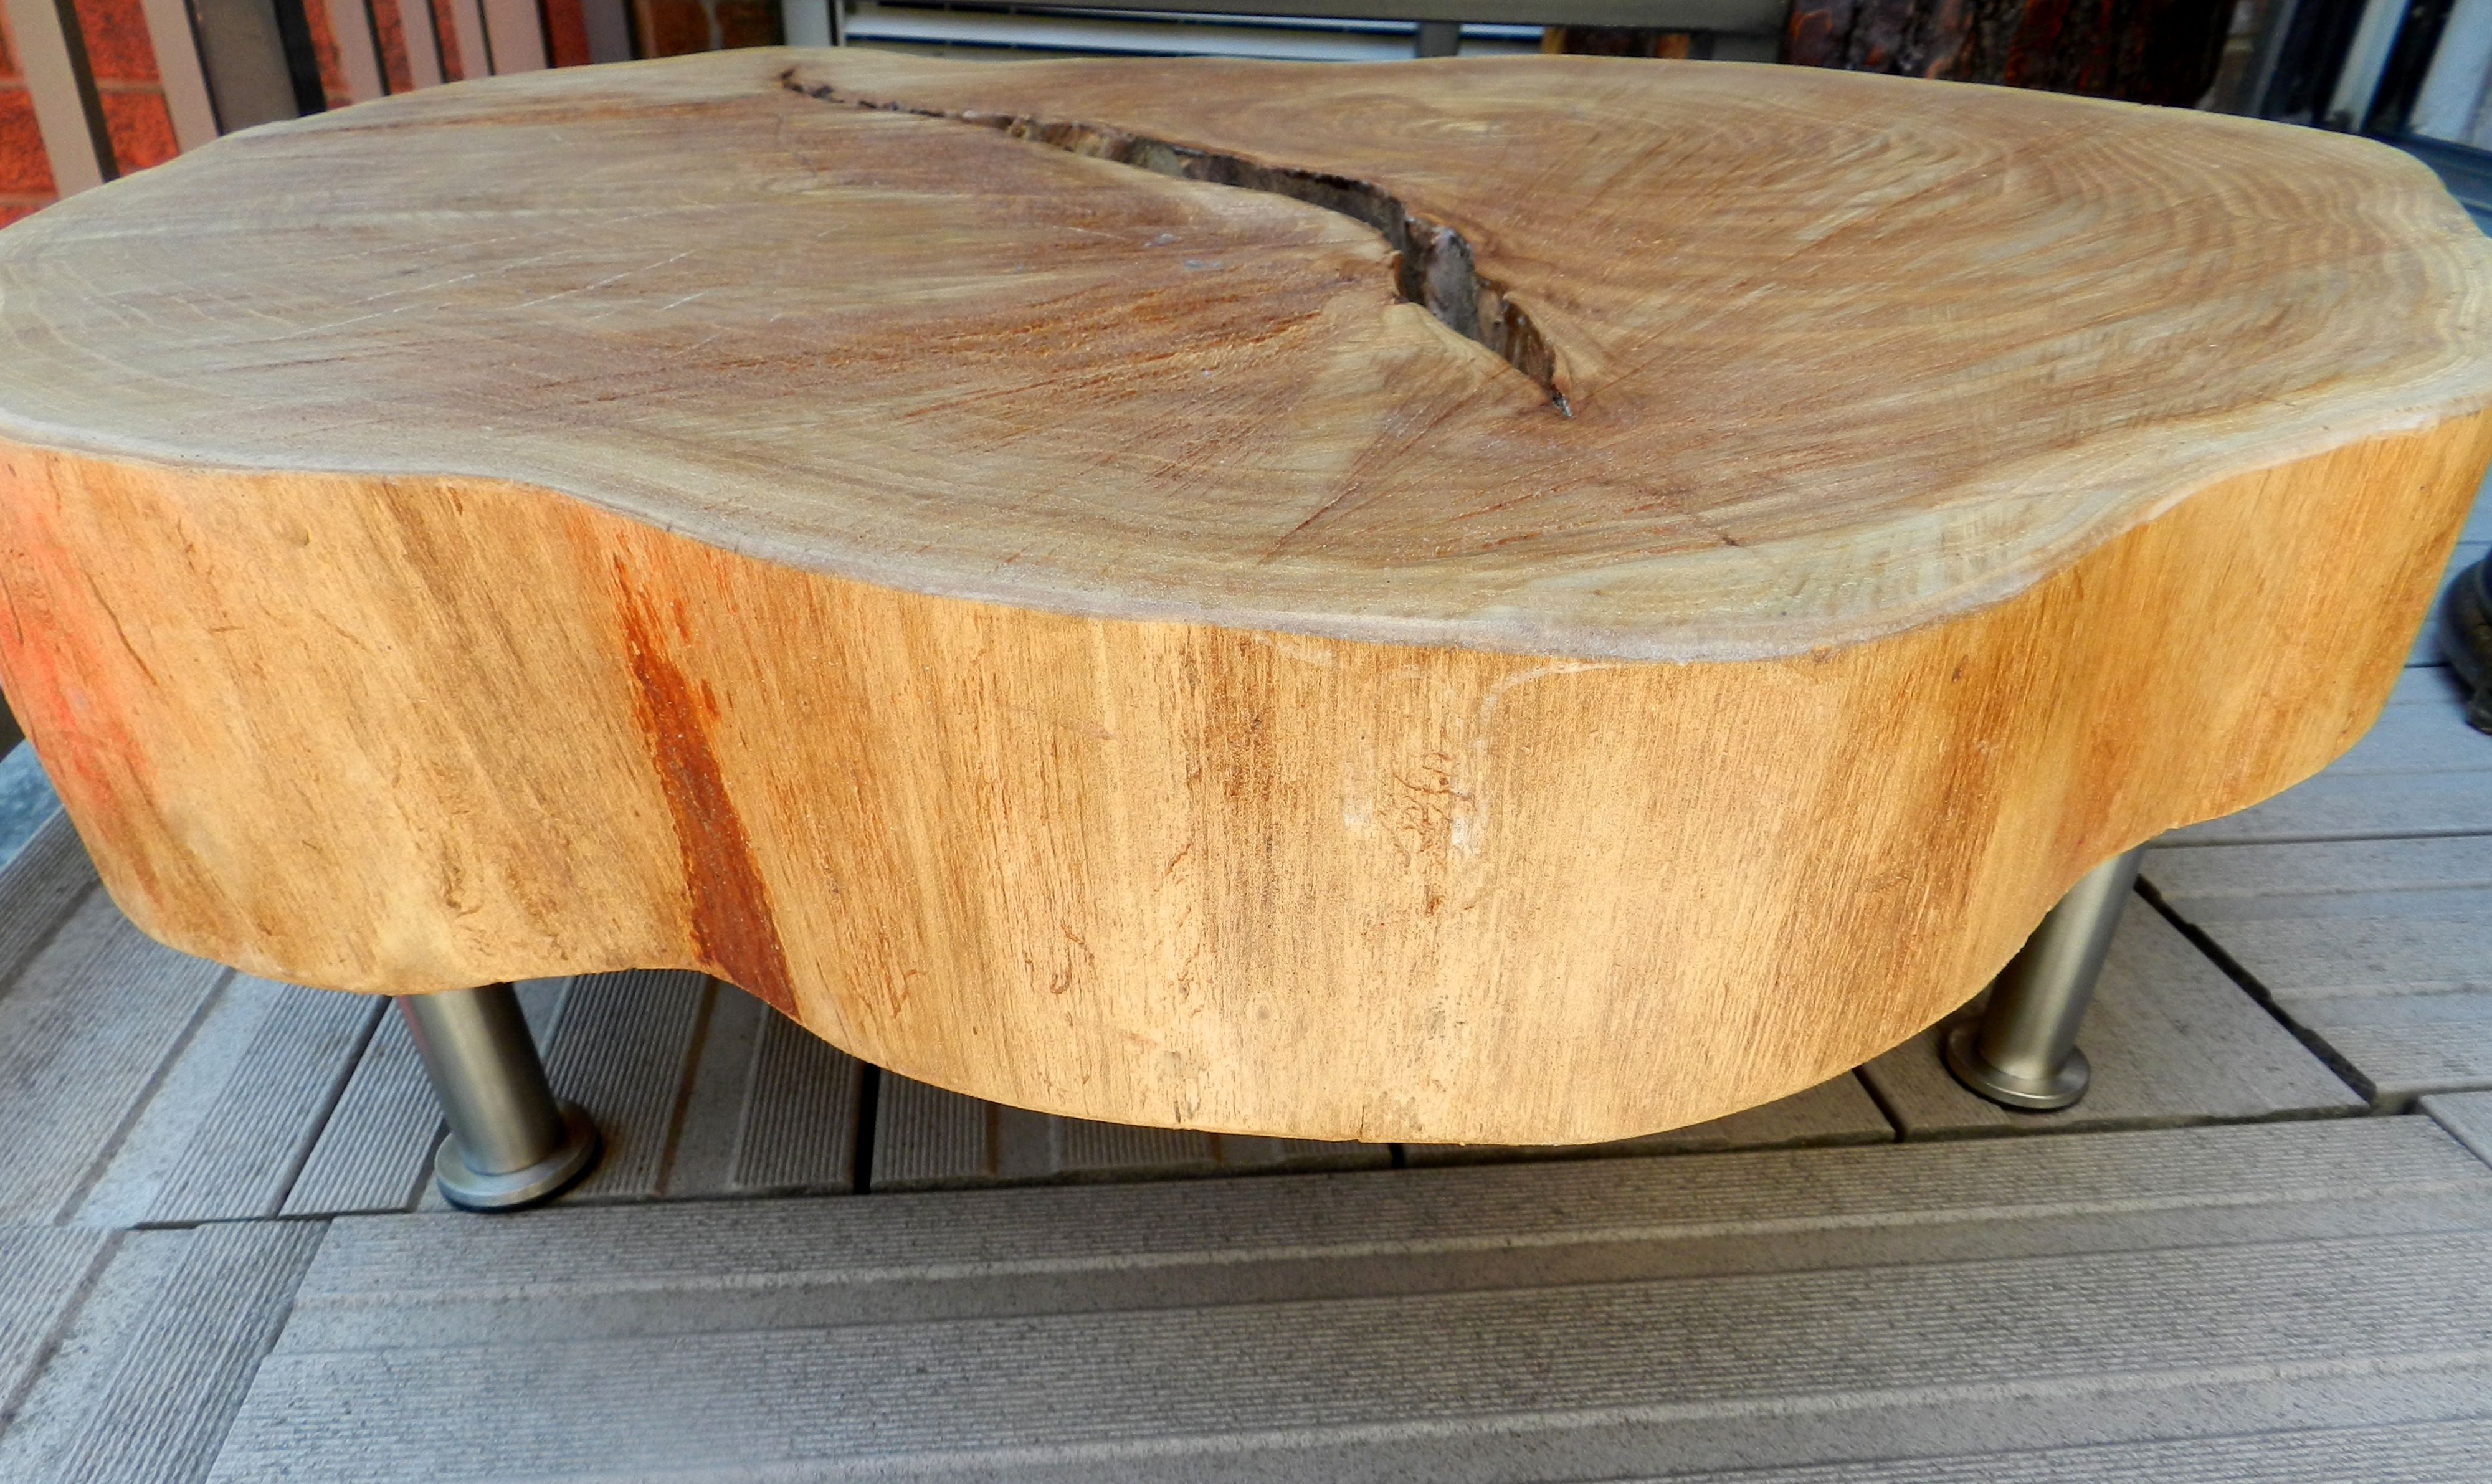 Tree Ring Brokenhearted Wood Slab Table Rings Slices Coffee Tables